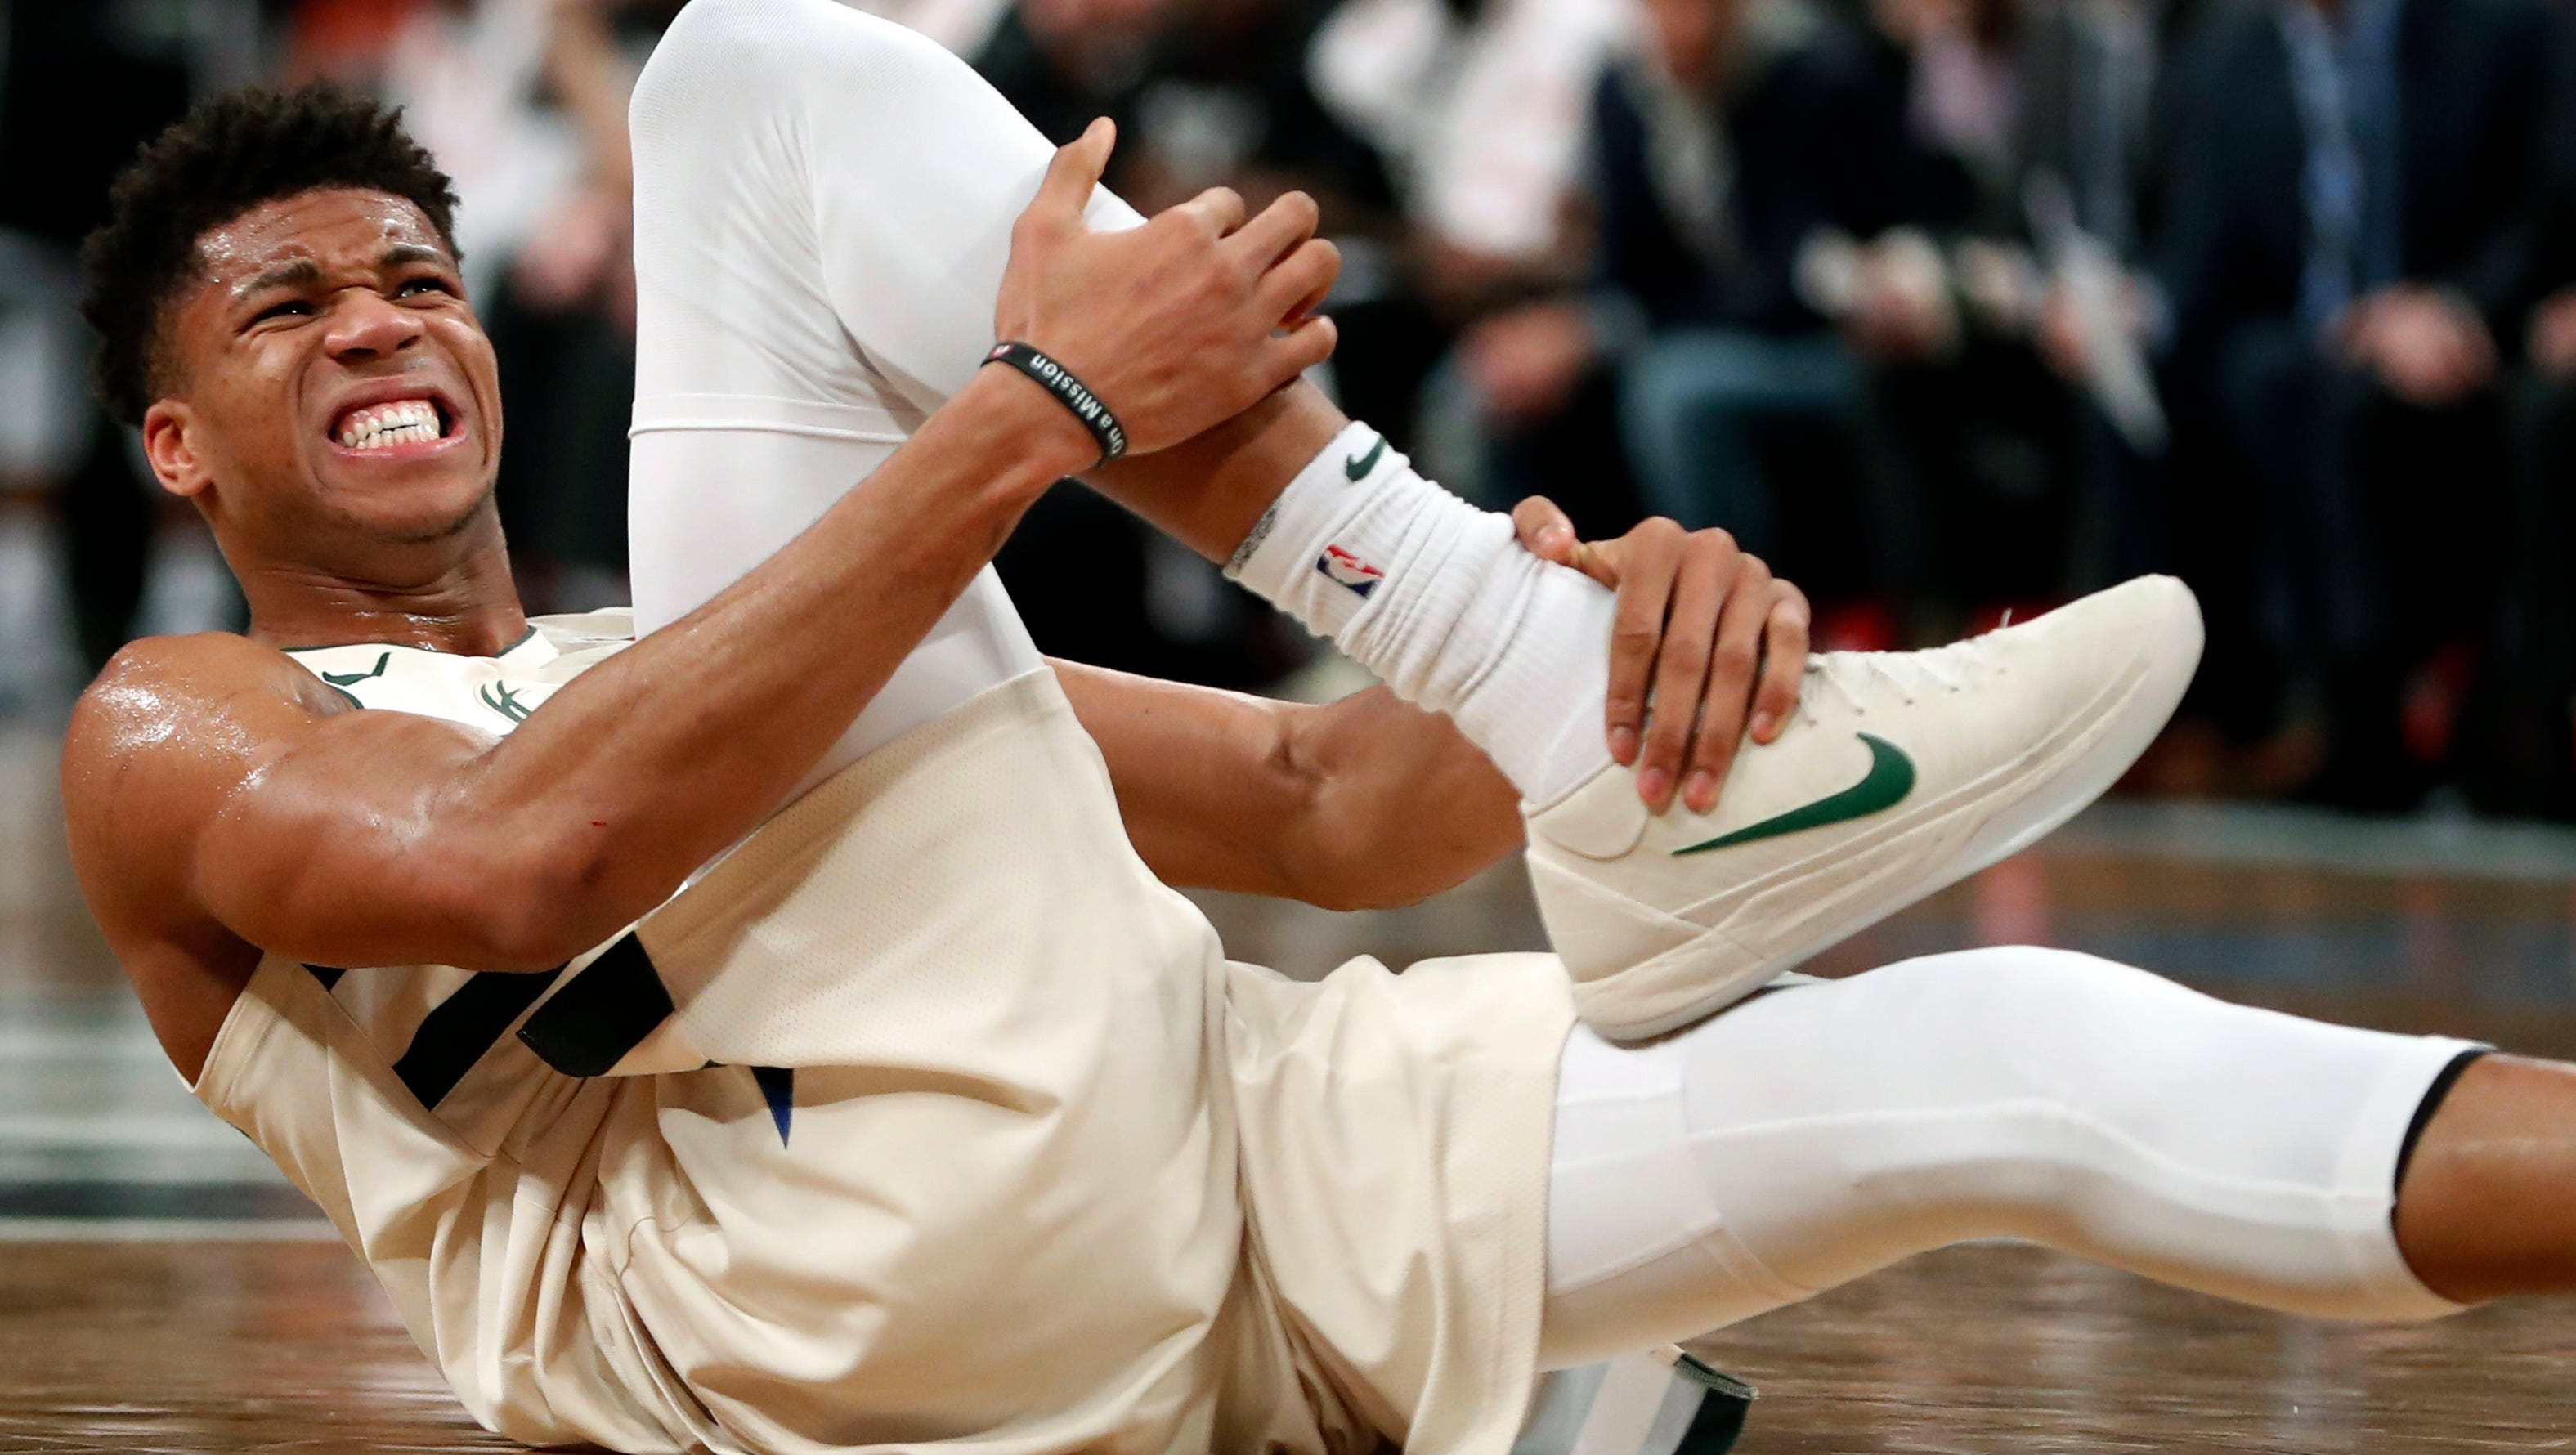 Giannis Adetokunbo Misses NBA Action Due To Injury, But Bucks Win